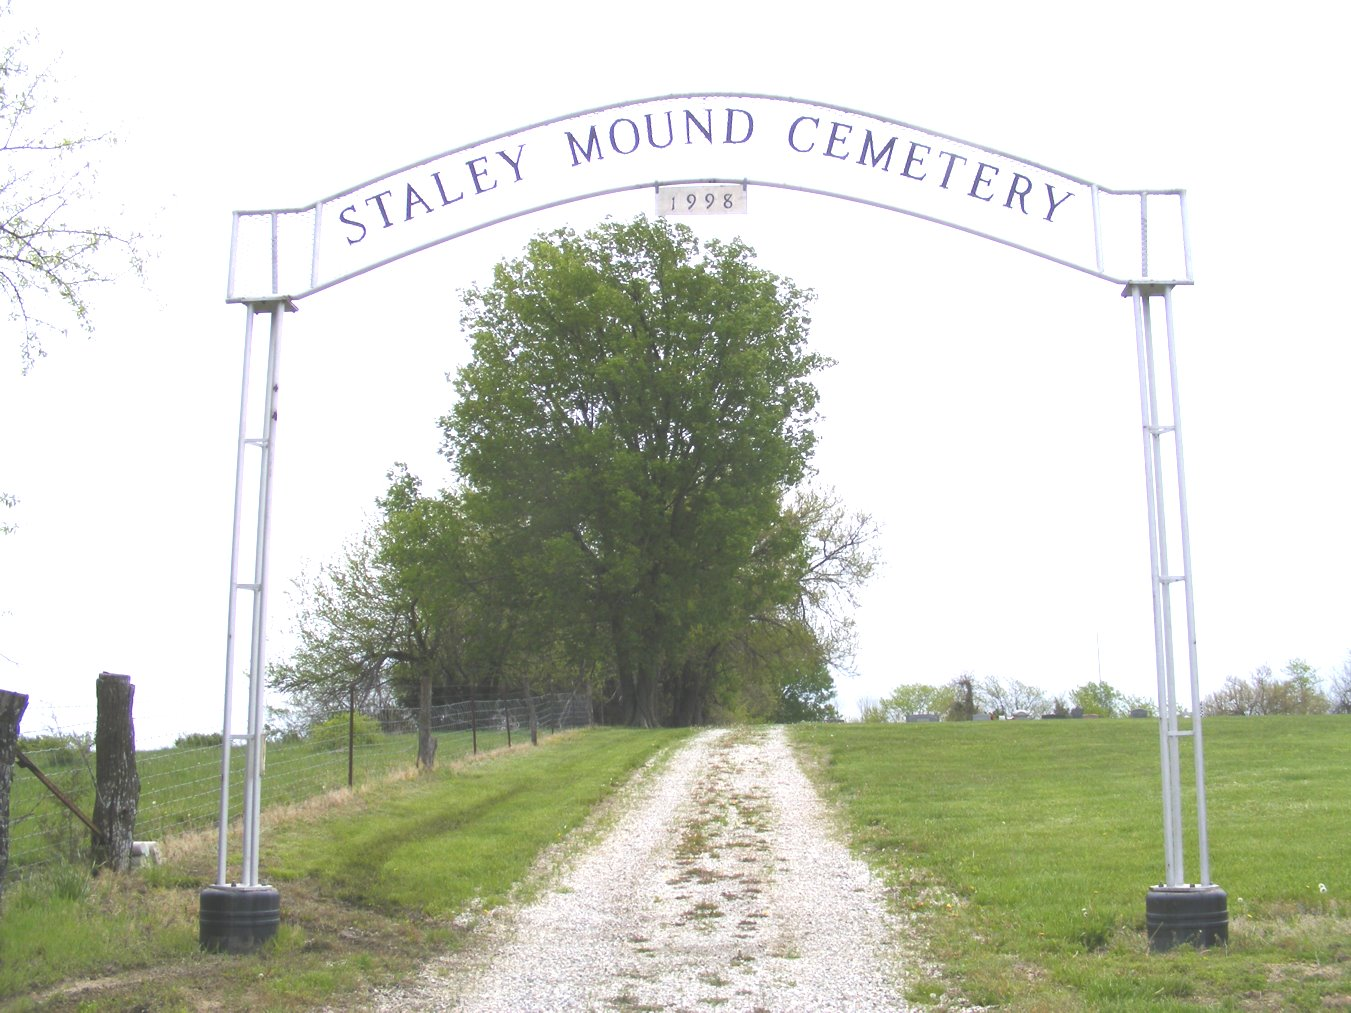 Staley Mound Cemetery